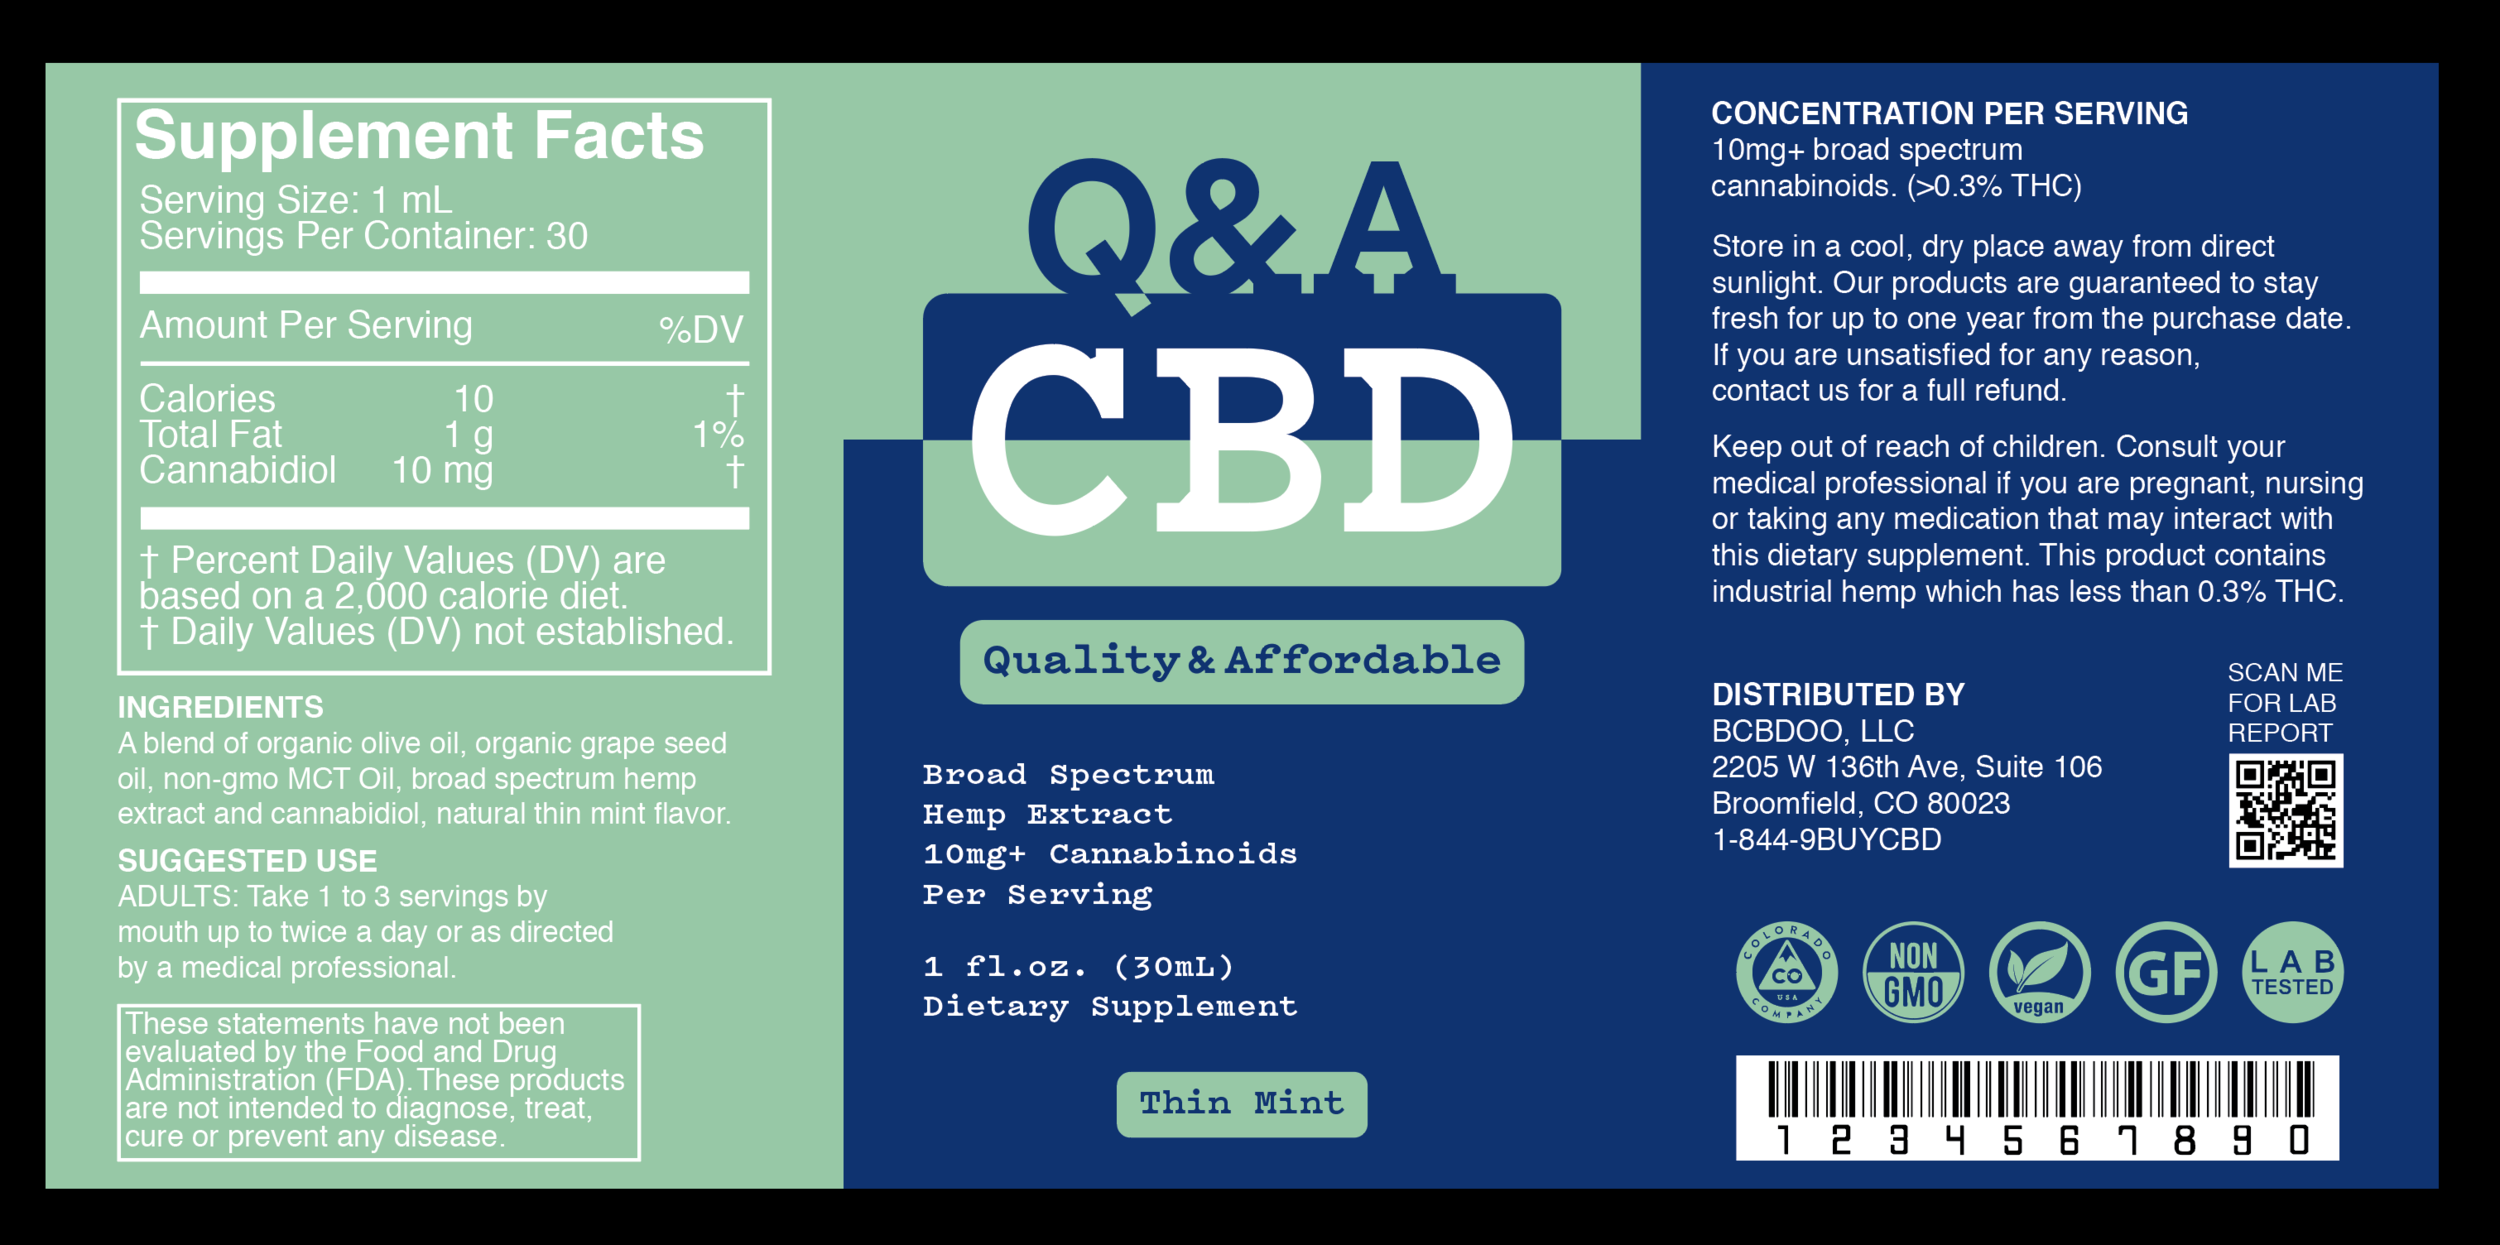 Q&A CBD Thin Mint Label.